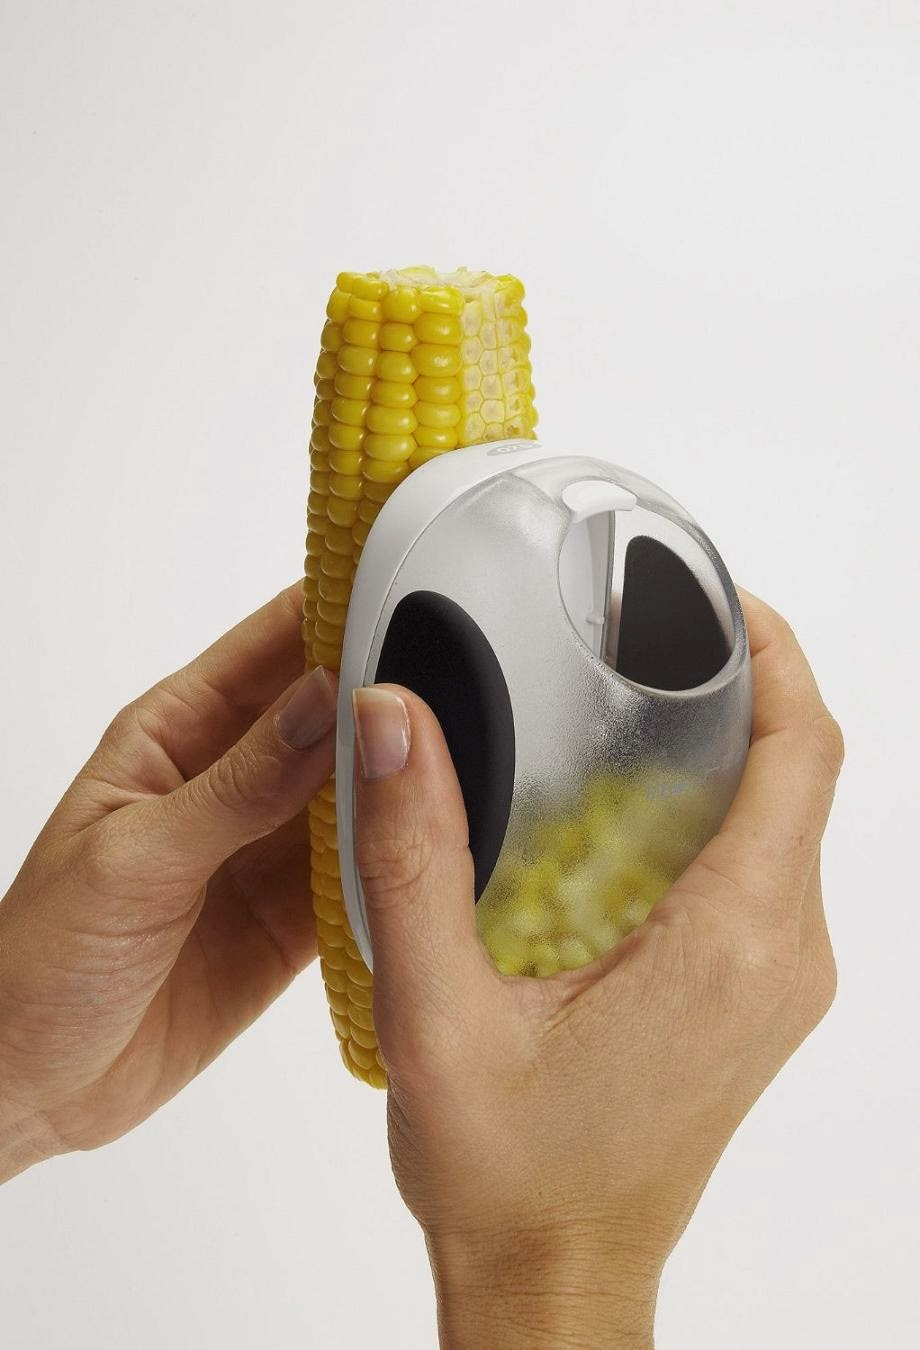 corn cool creative zipper removes safely kernels quickly